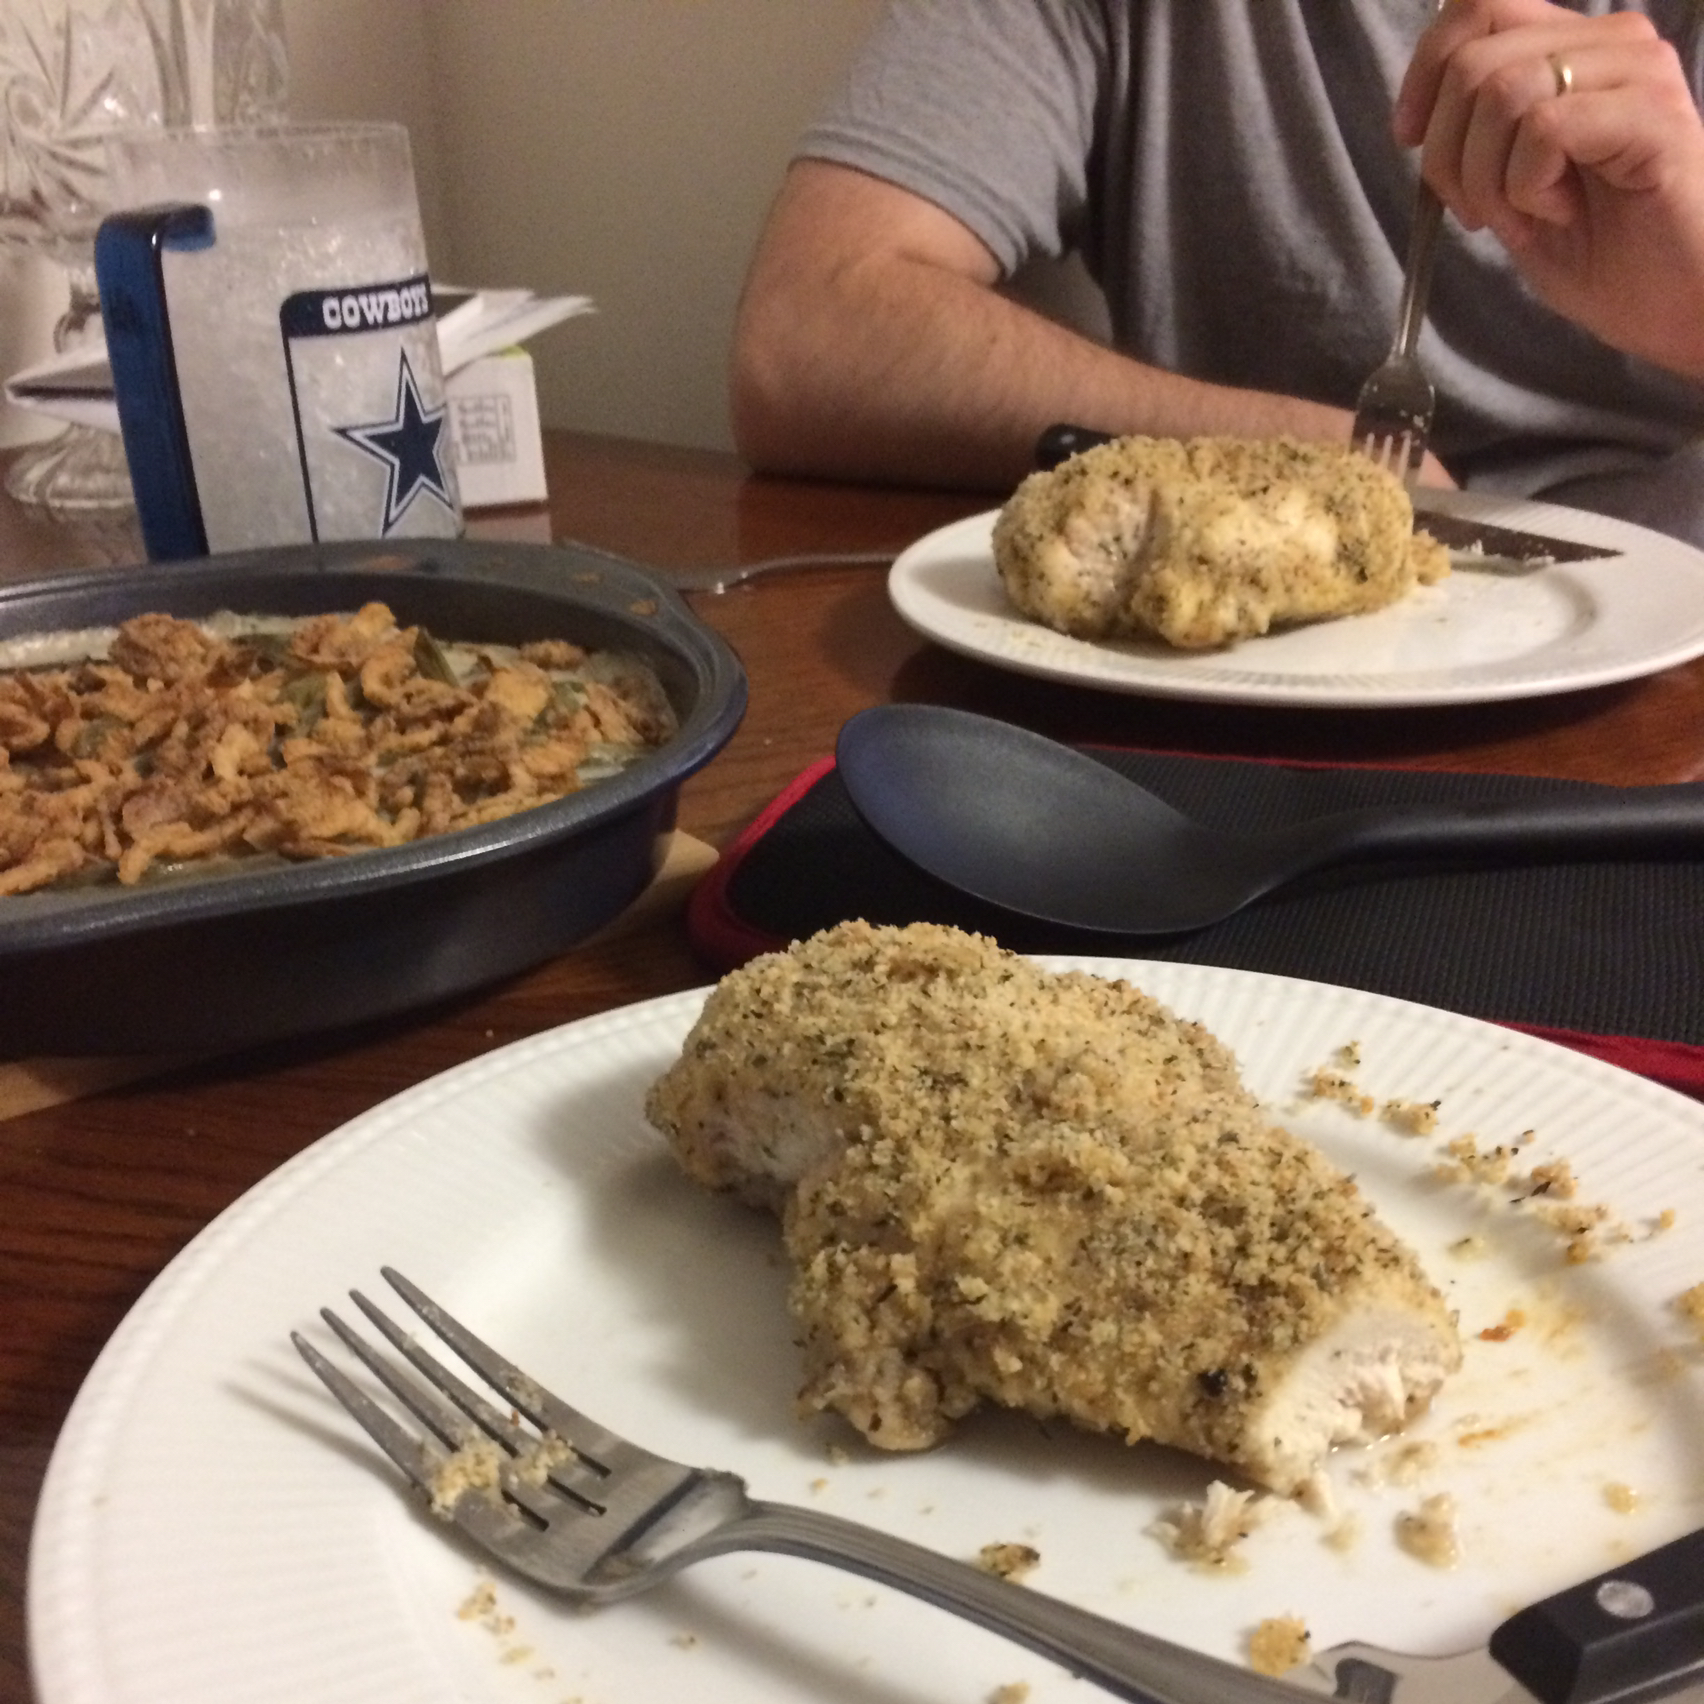 Baked Parmesan-Crusted Chicken Lena R